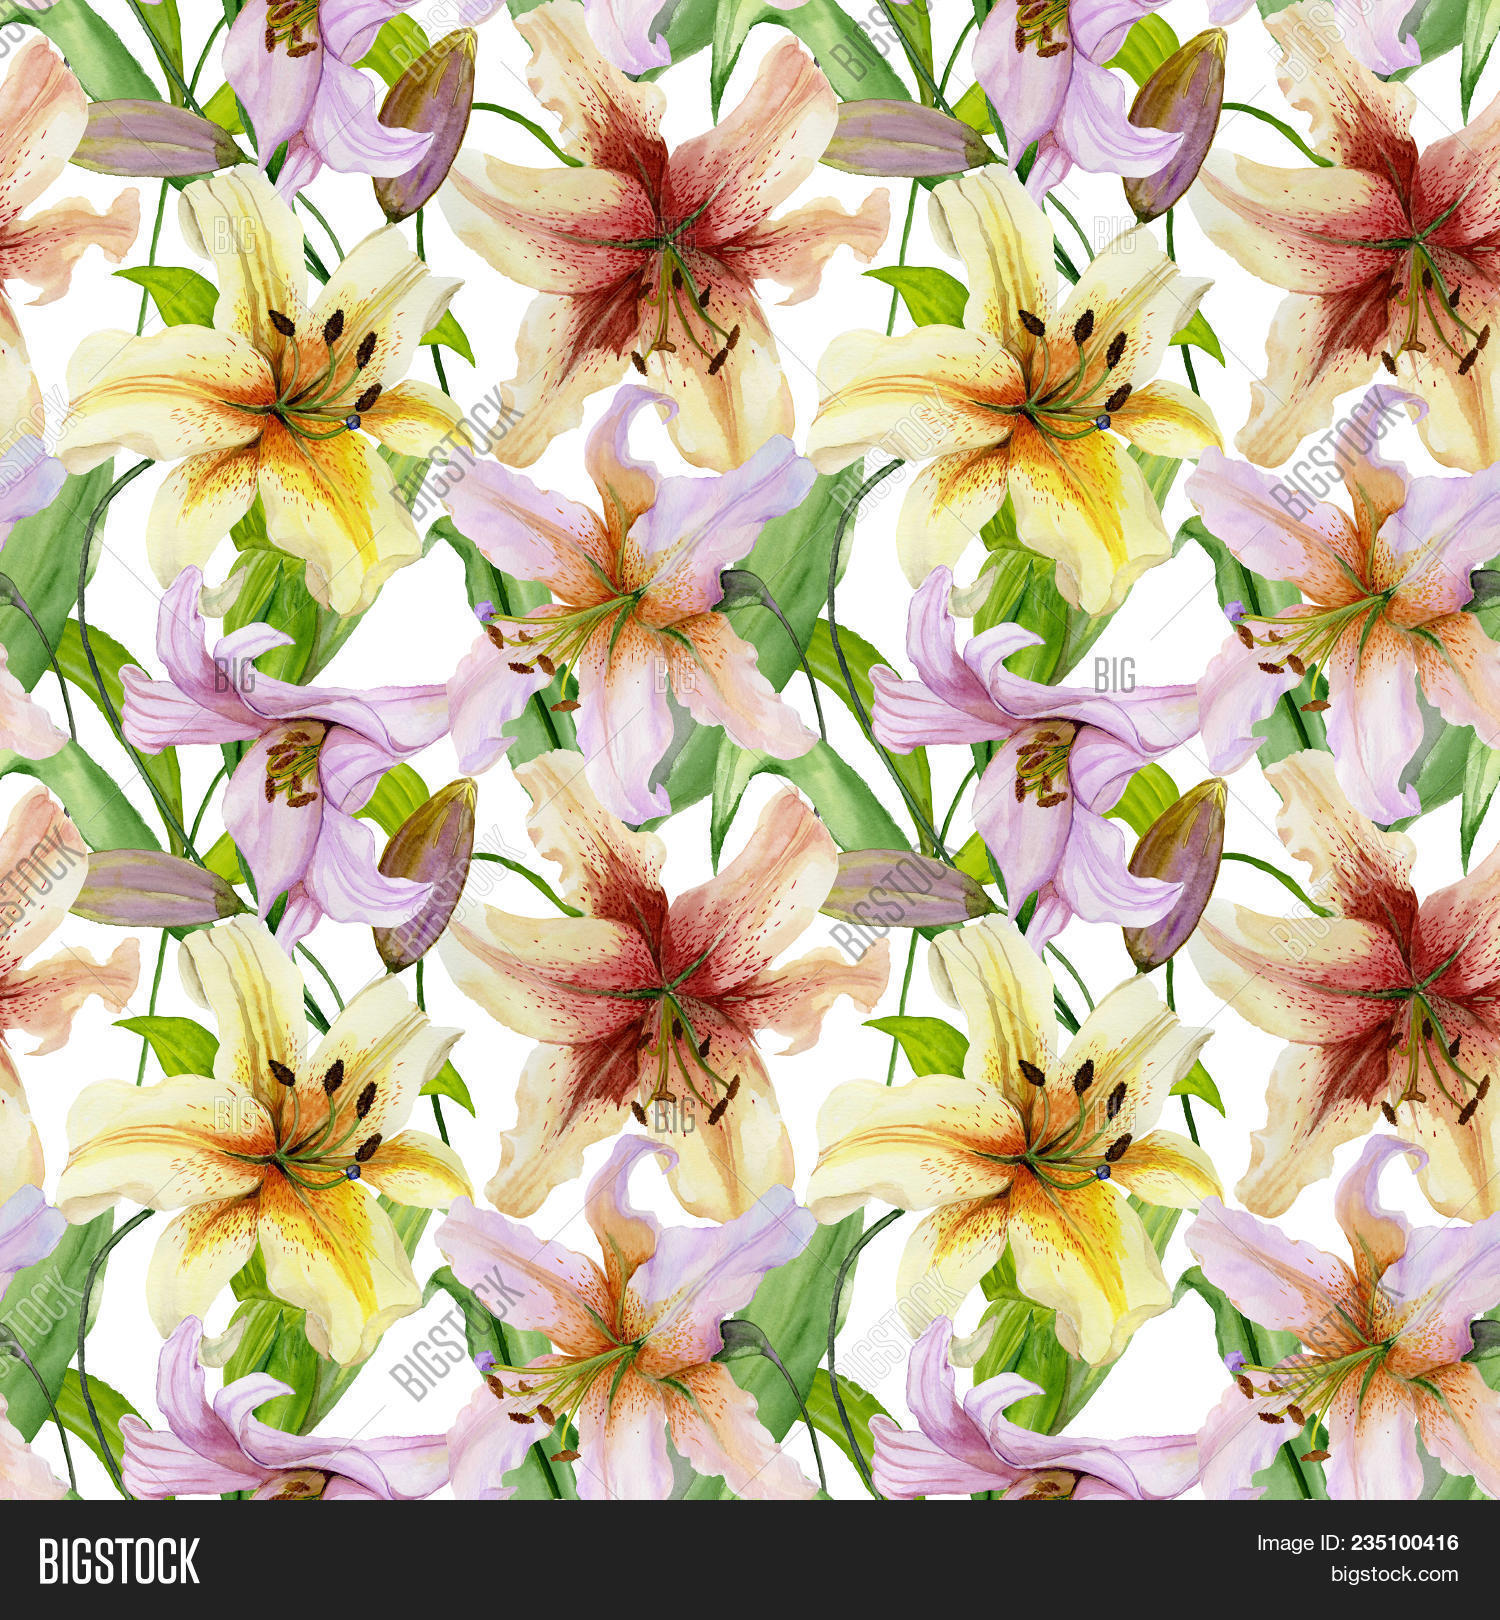 Beautiful lily flowers image photo free trial bigstock beautiful lily flowers with leaves on white background seamless floral pattern watercolor painting izmirmasajfo